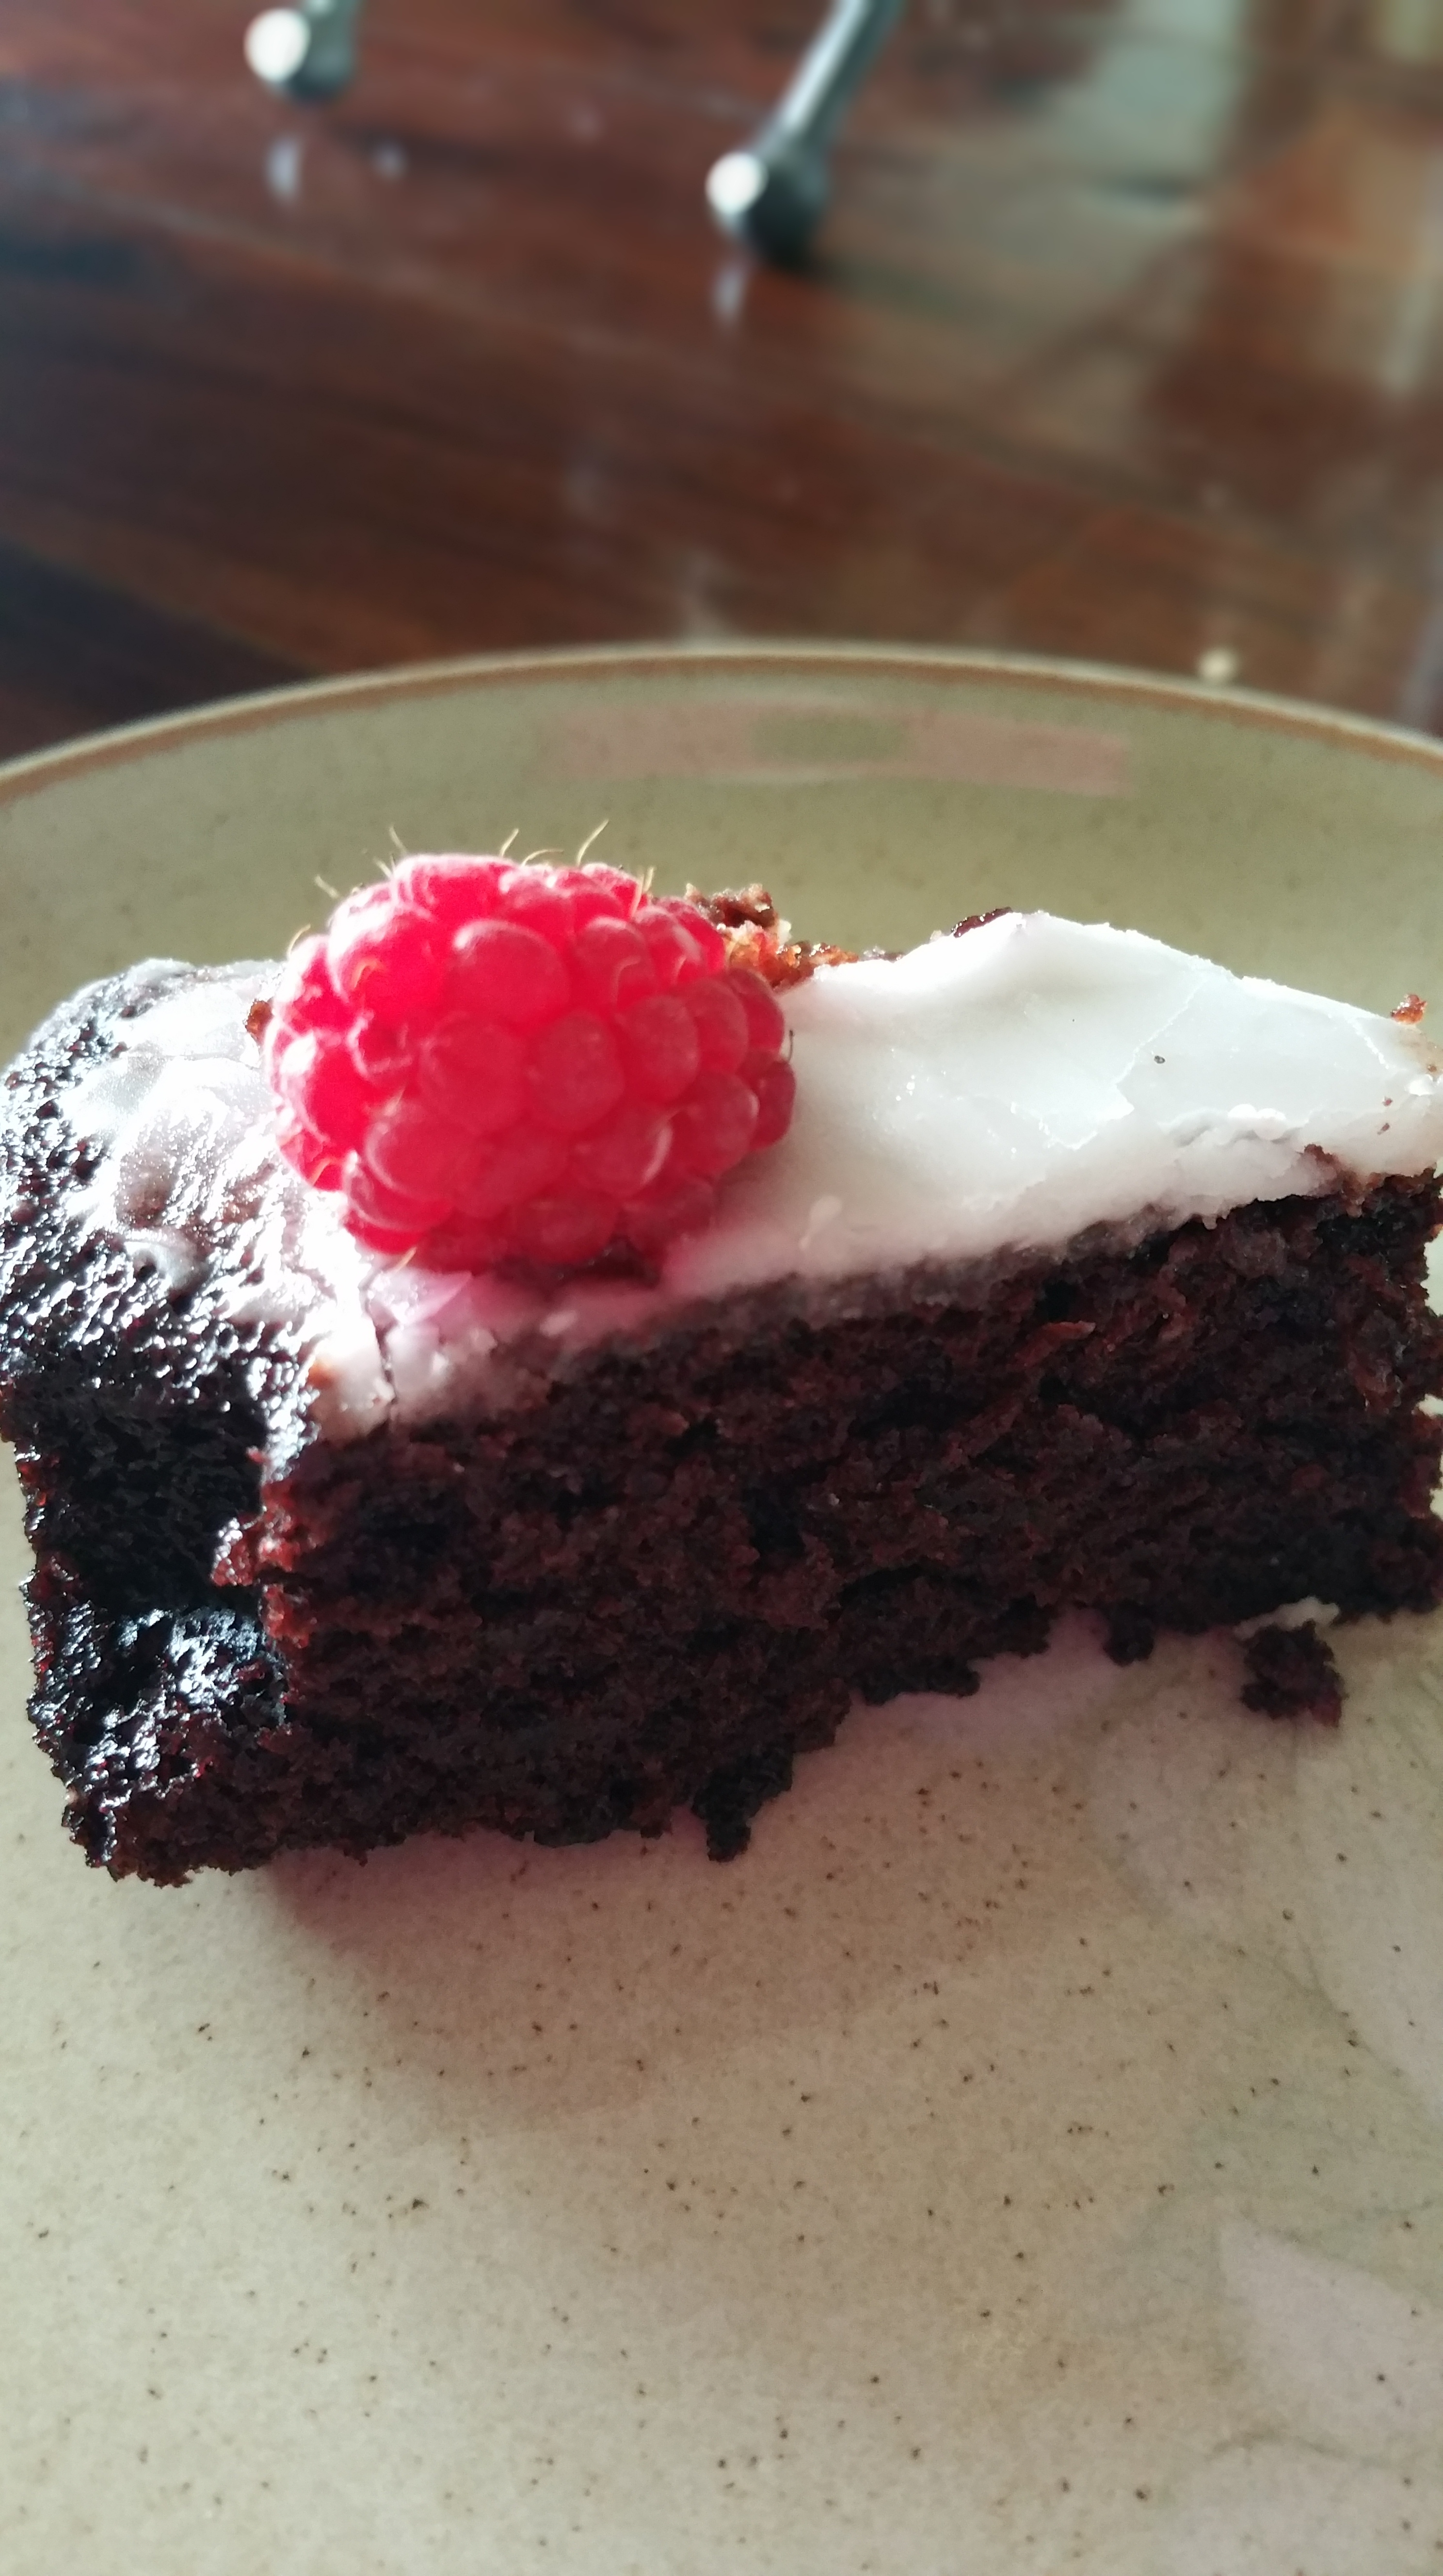 Dairy & Egg Free Chocolate Cake